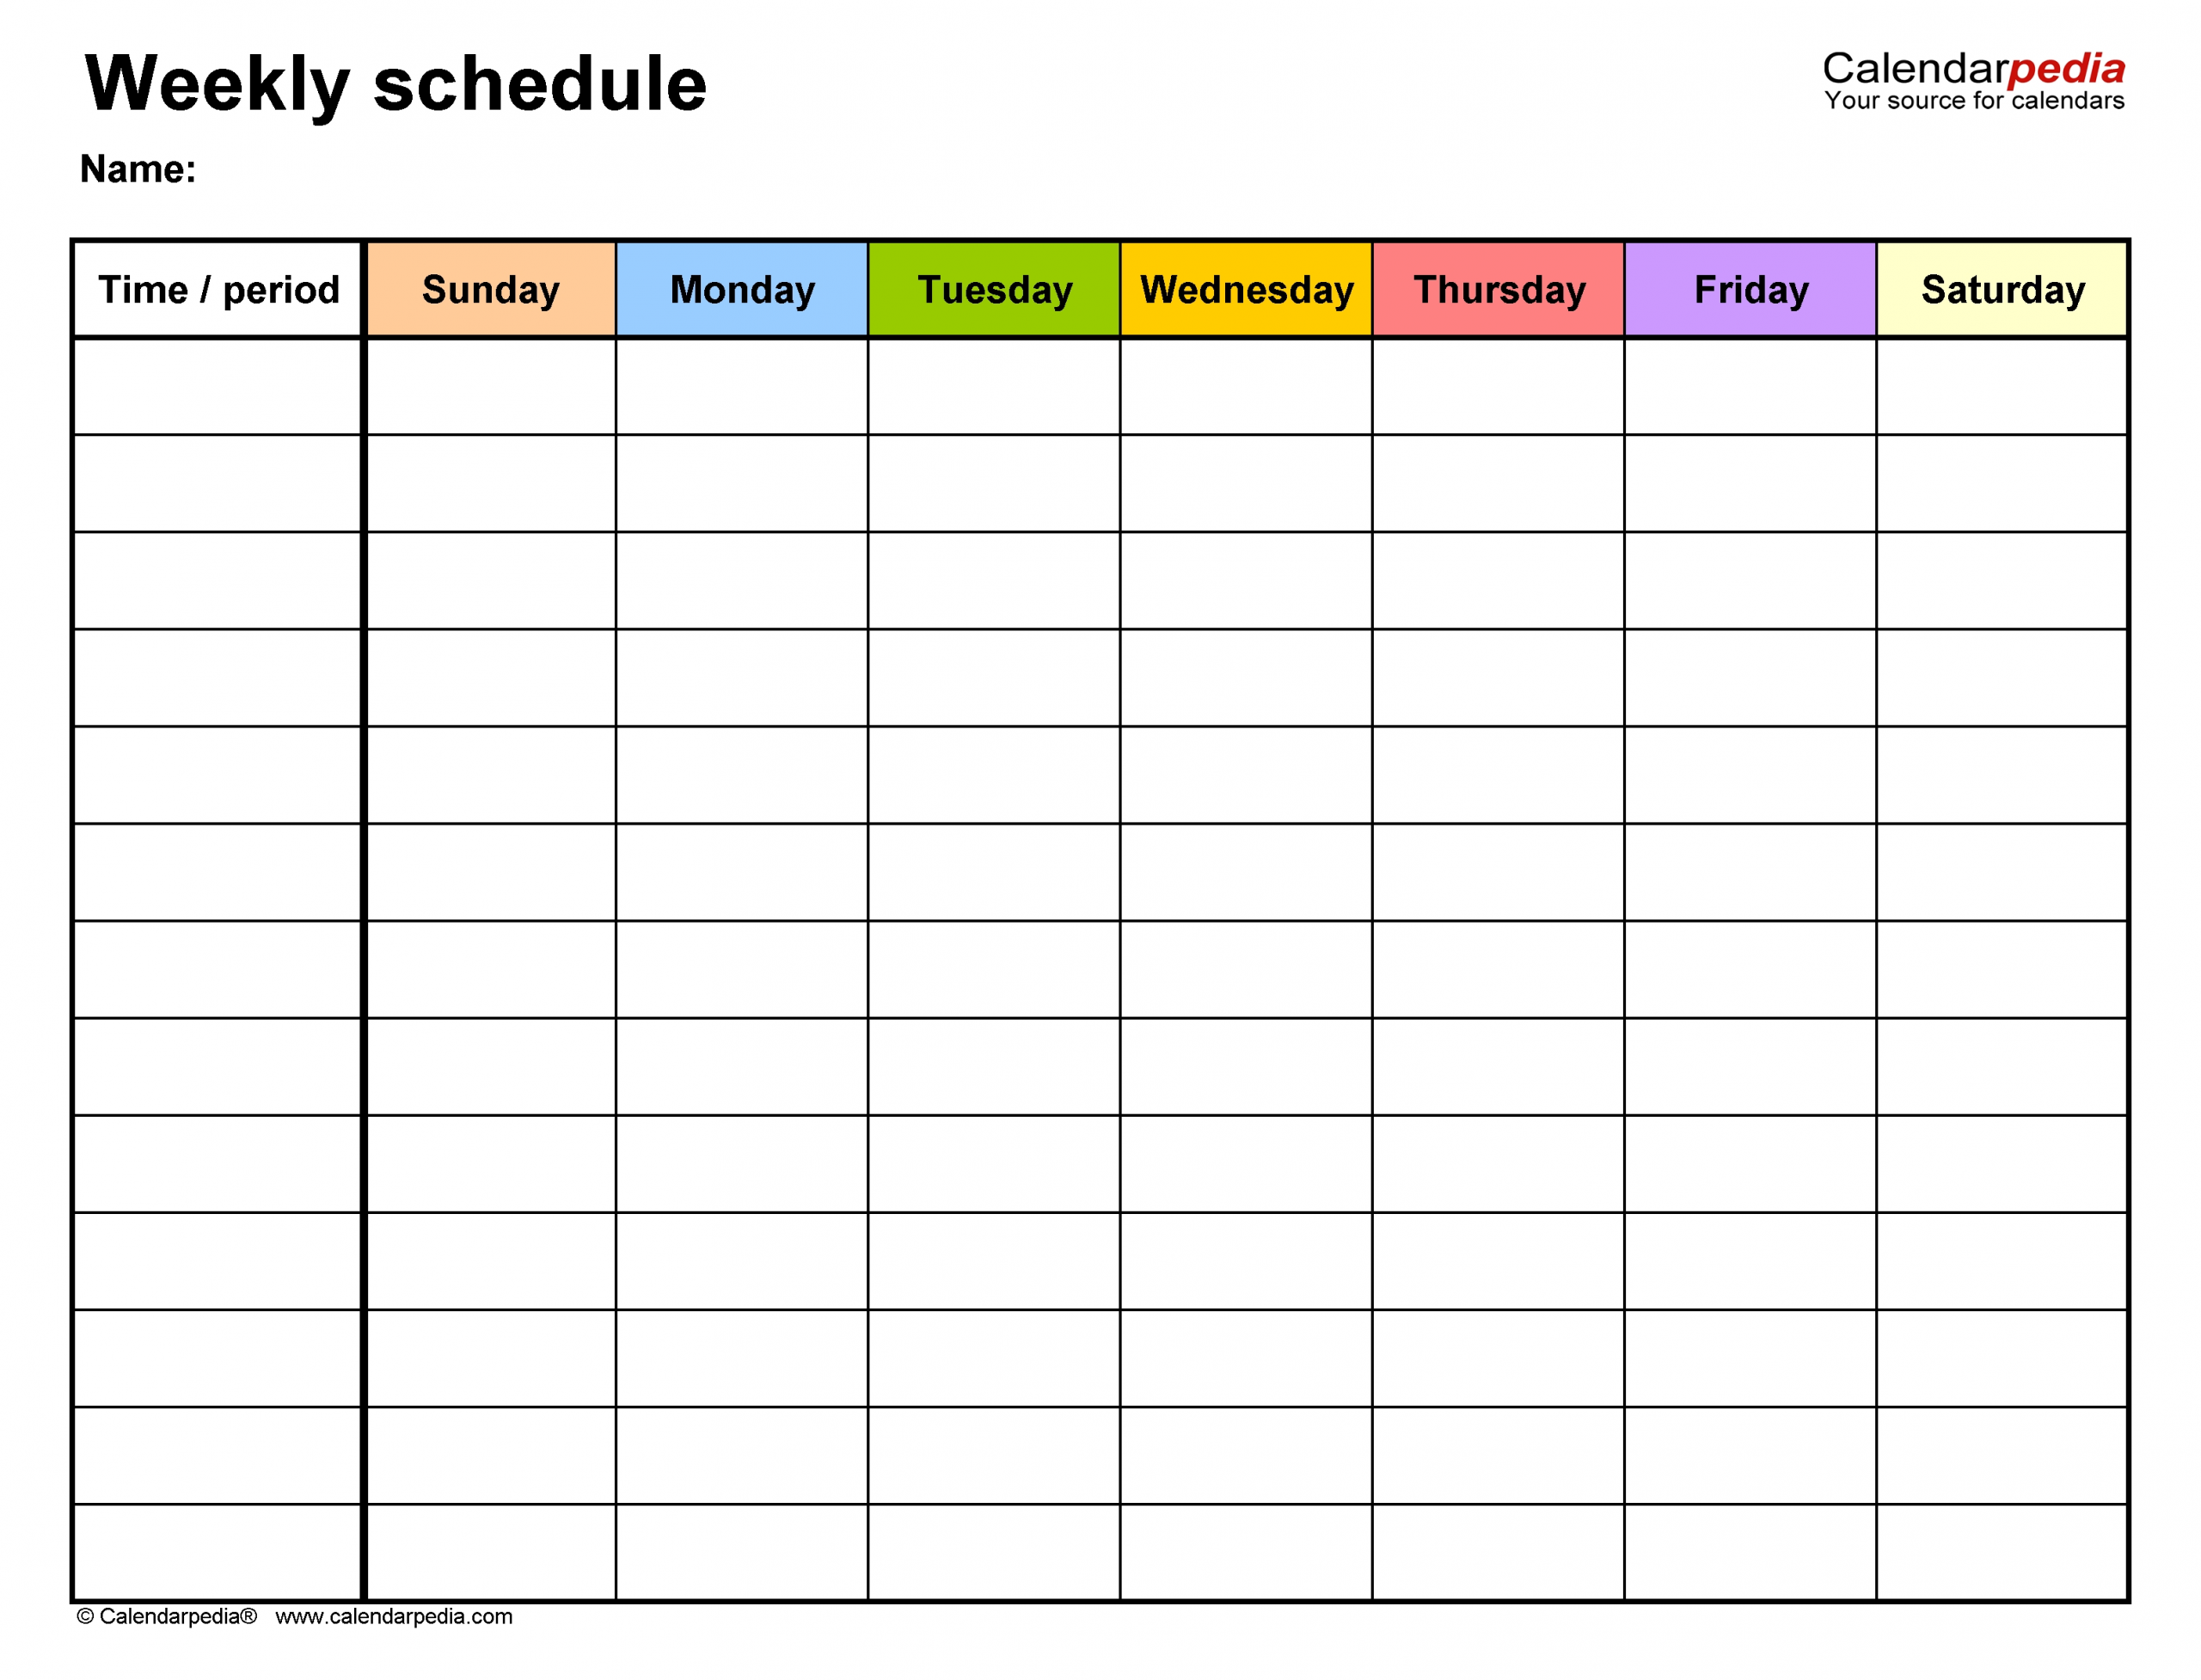 Free Weekly Schedule Templates For Word - 18 Templates  Weekly Planner Printable Day 7